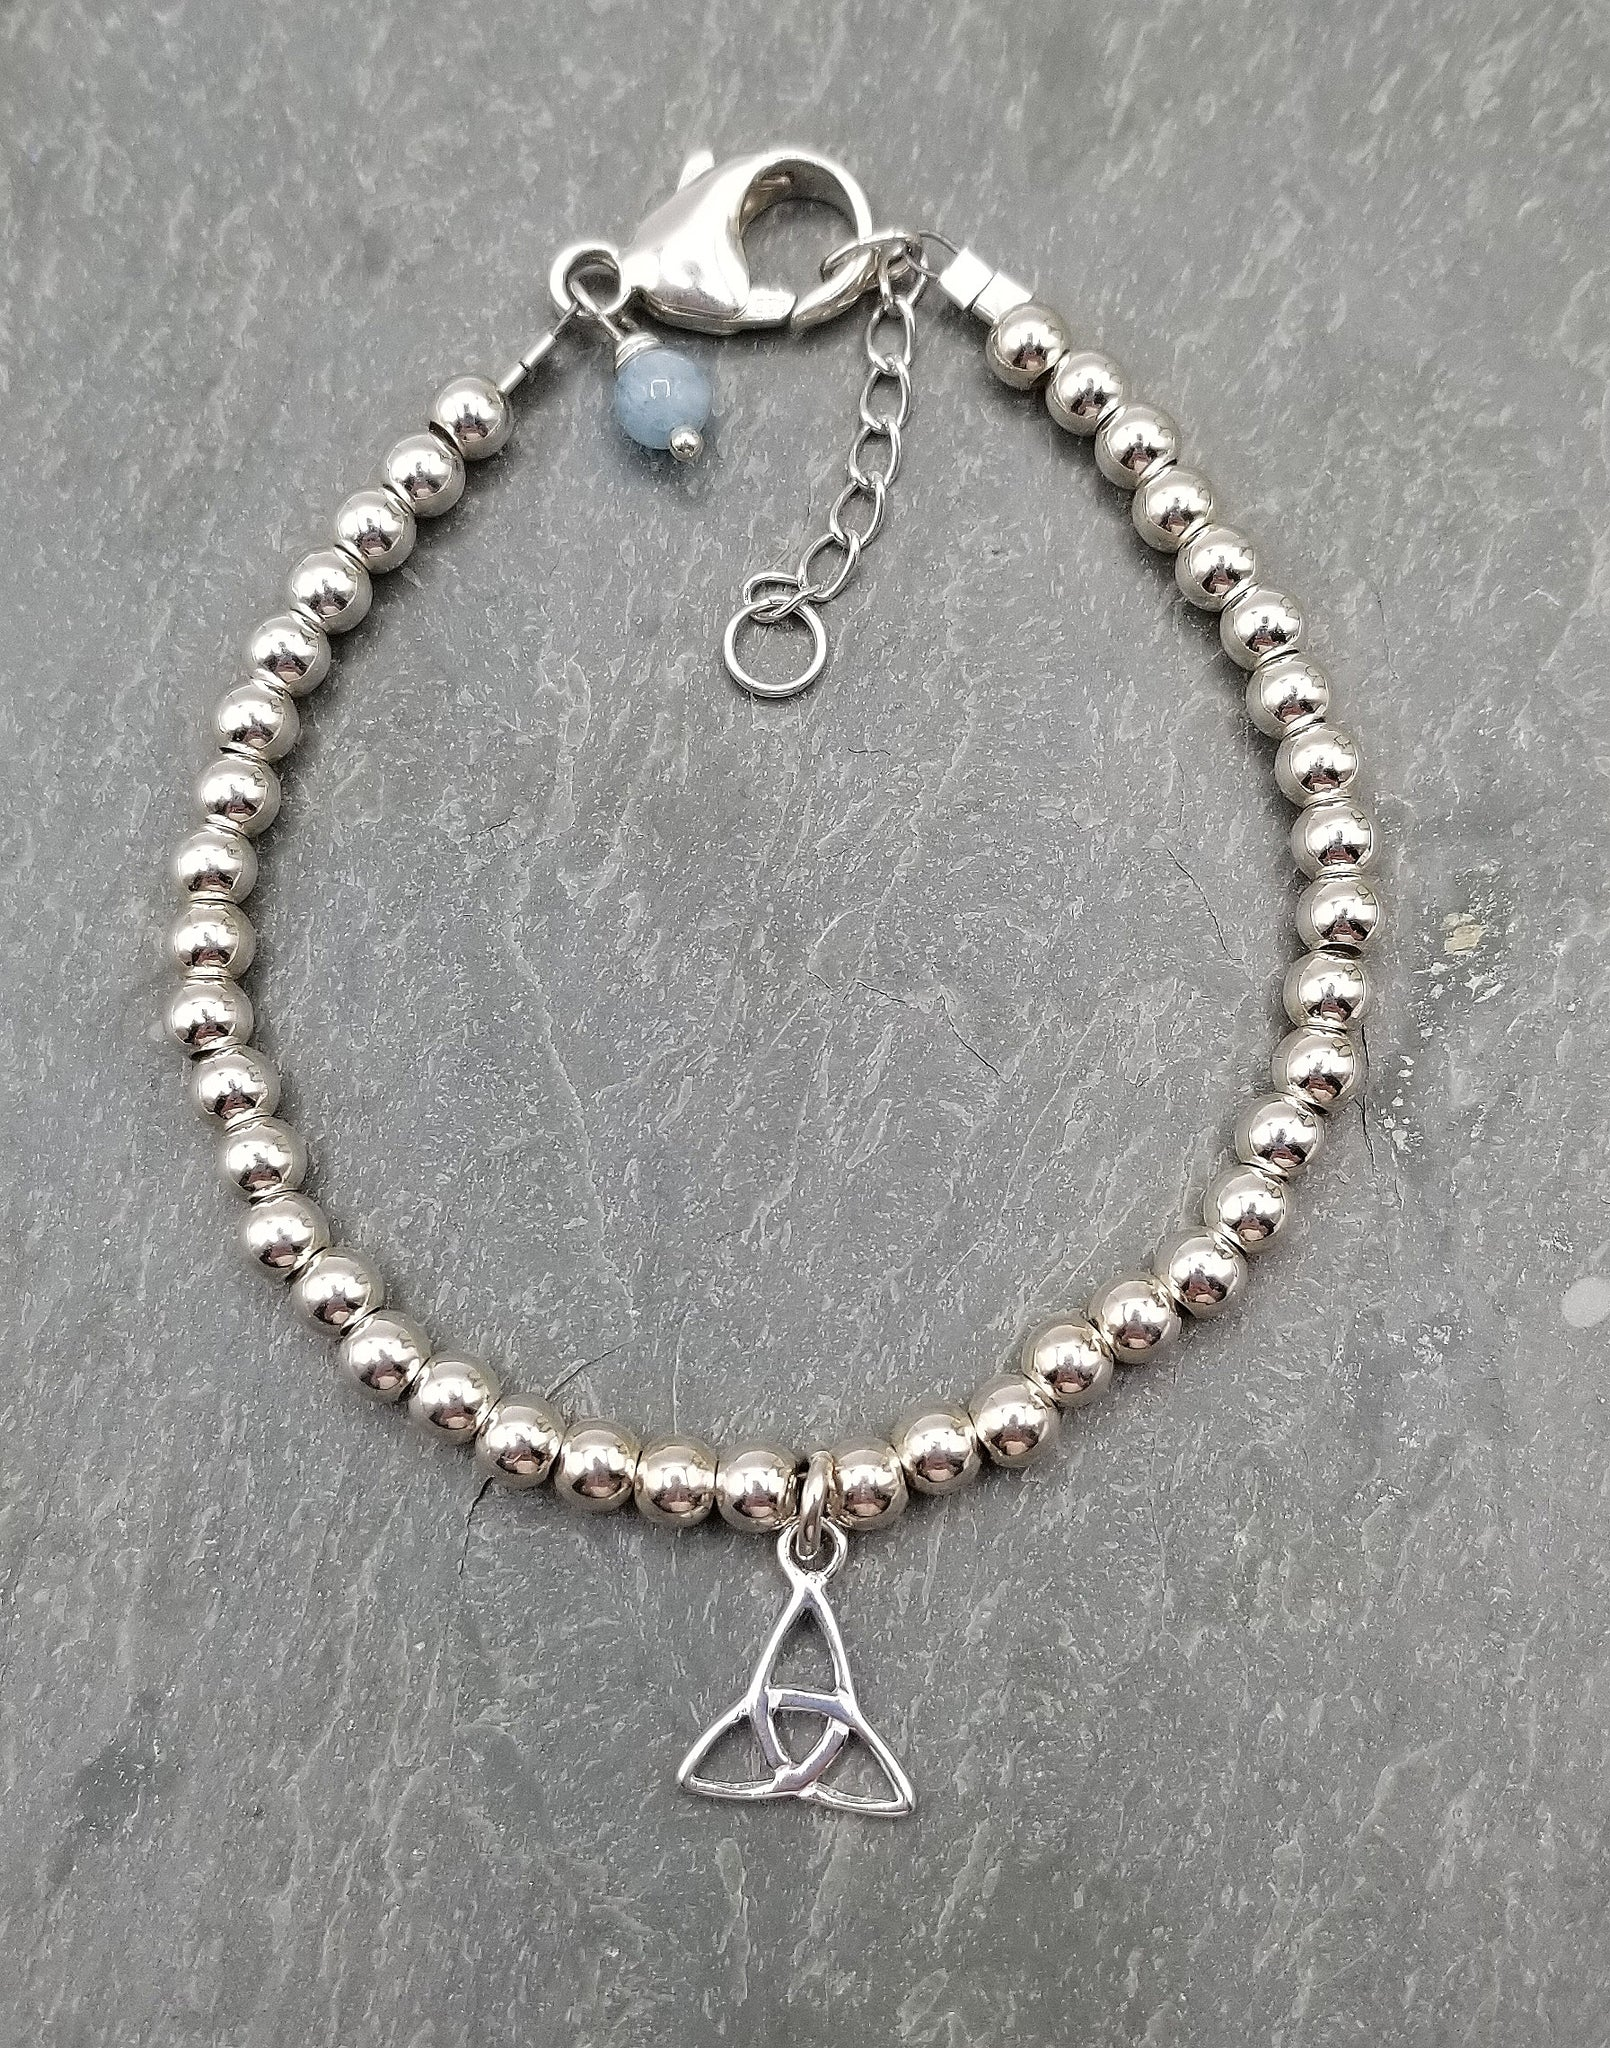 SWEET GEMS STERLING SILVER BRACELET WITH TRINITY CHARM